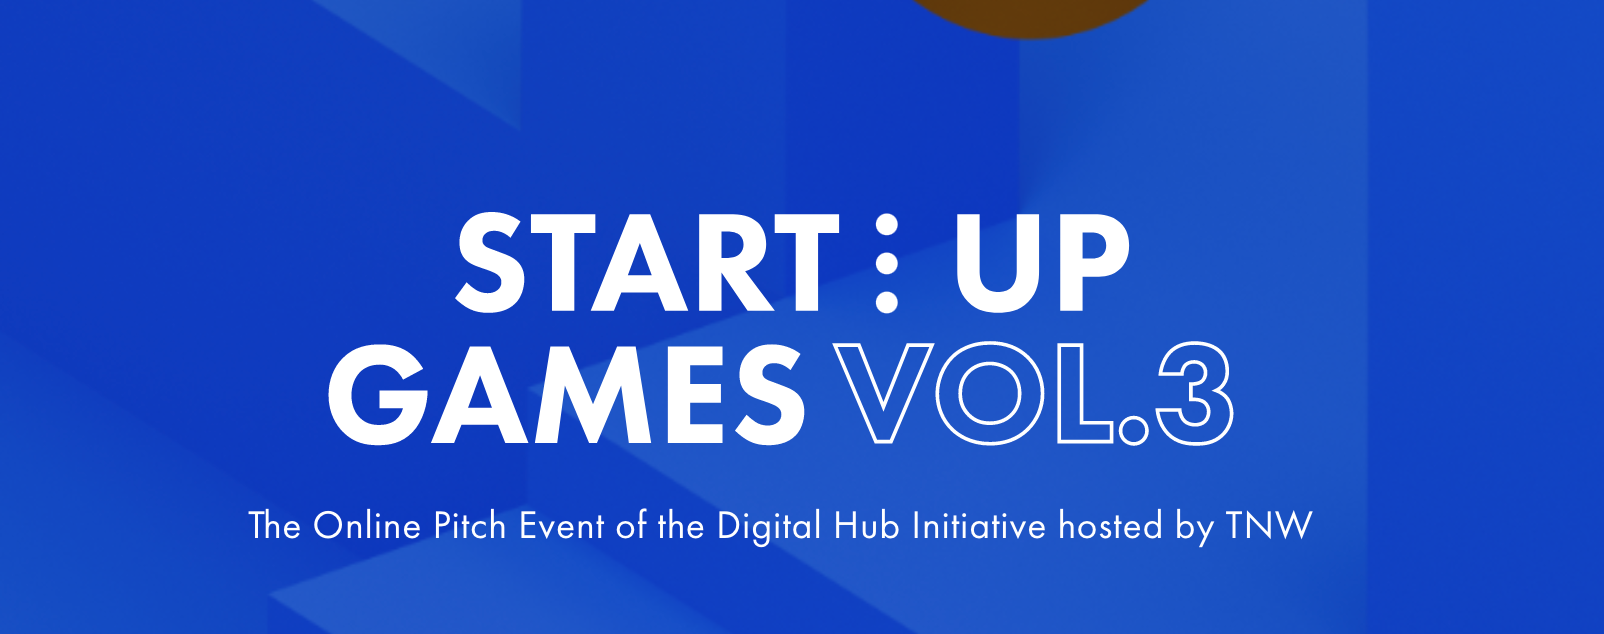 Startup Games: Vol. 3